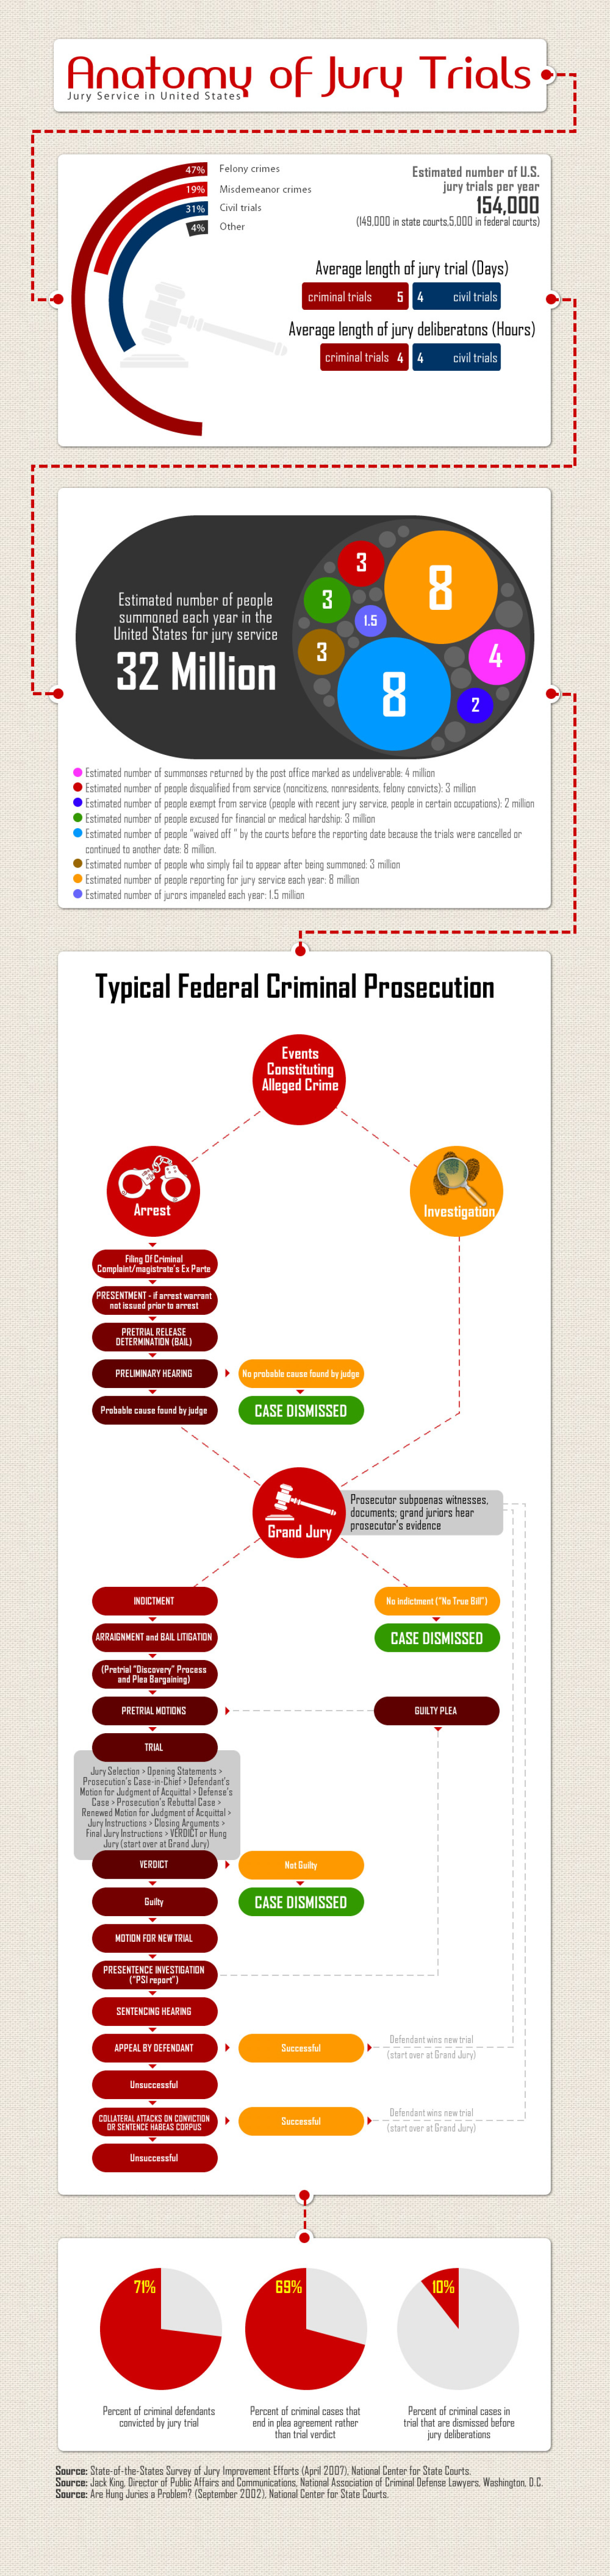 Anatomy of Jury Trials Infographic